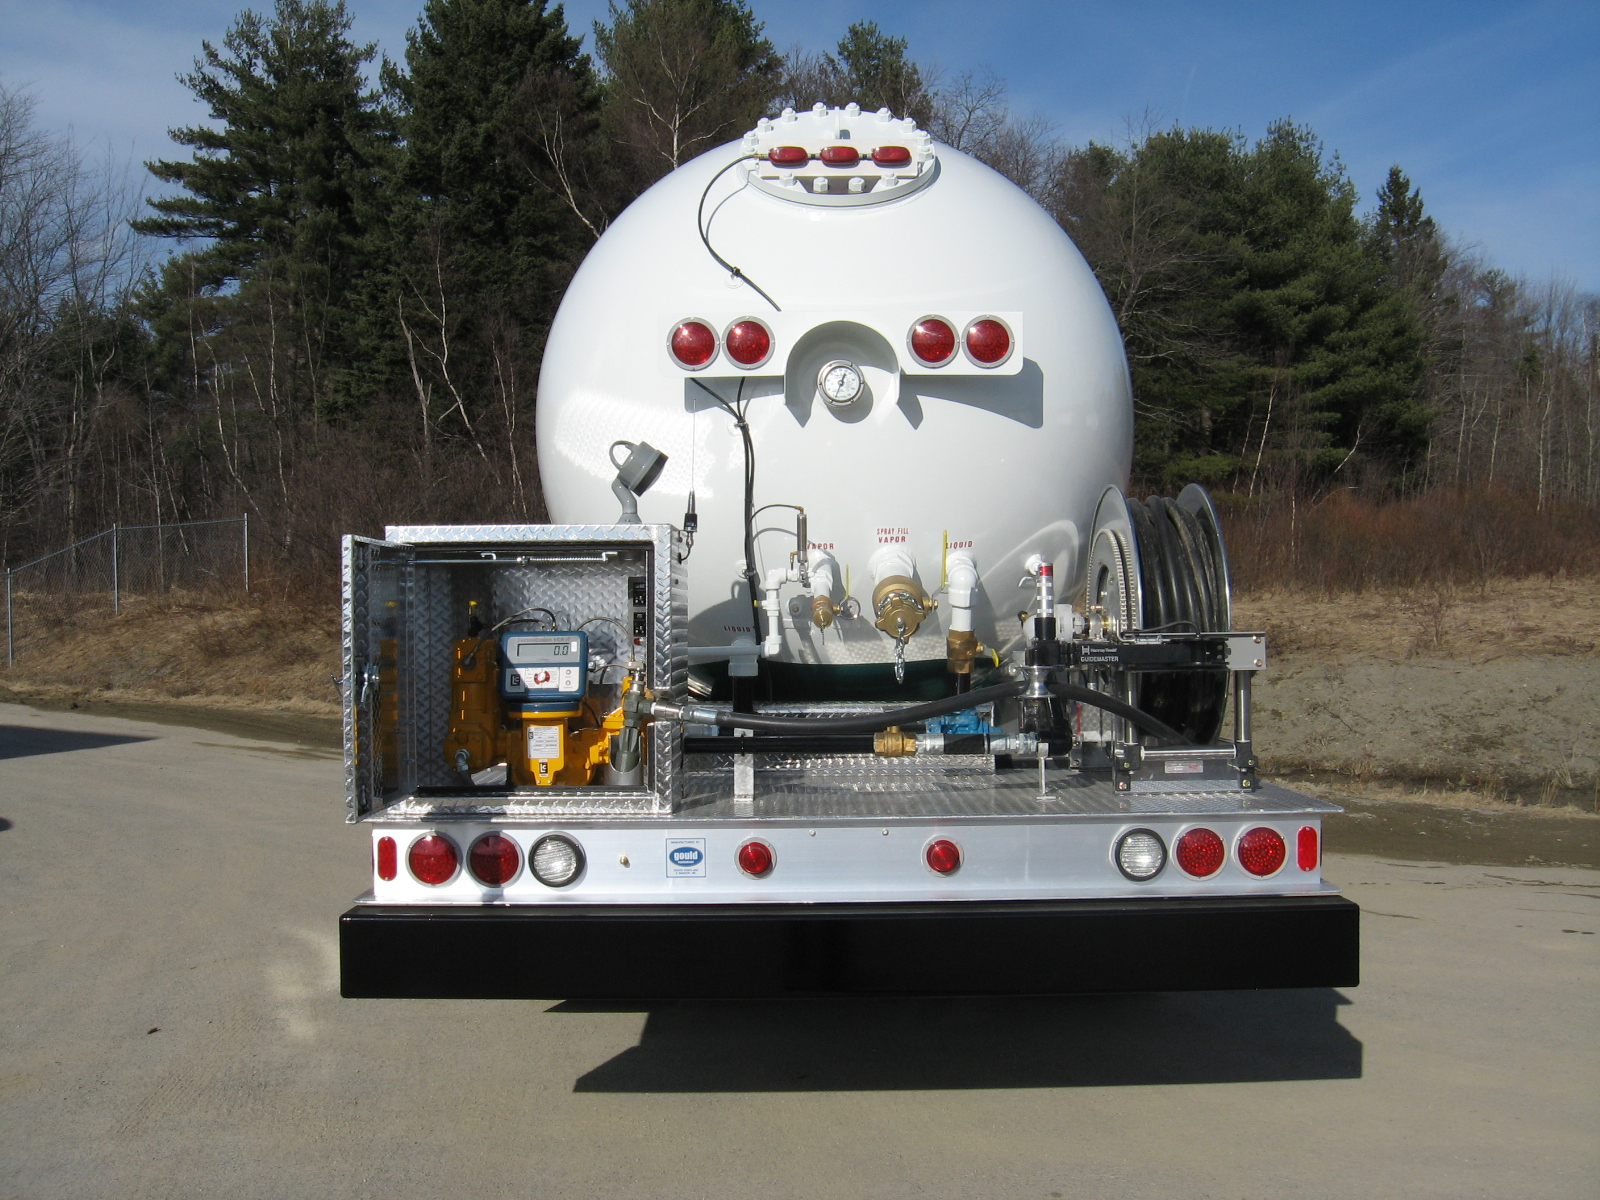 Propane truck, new, back view